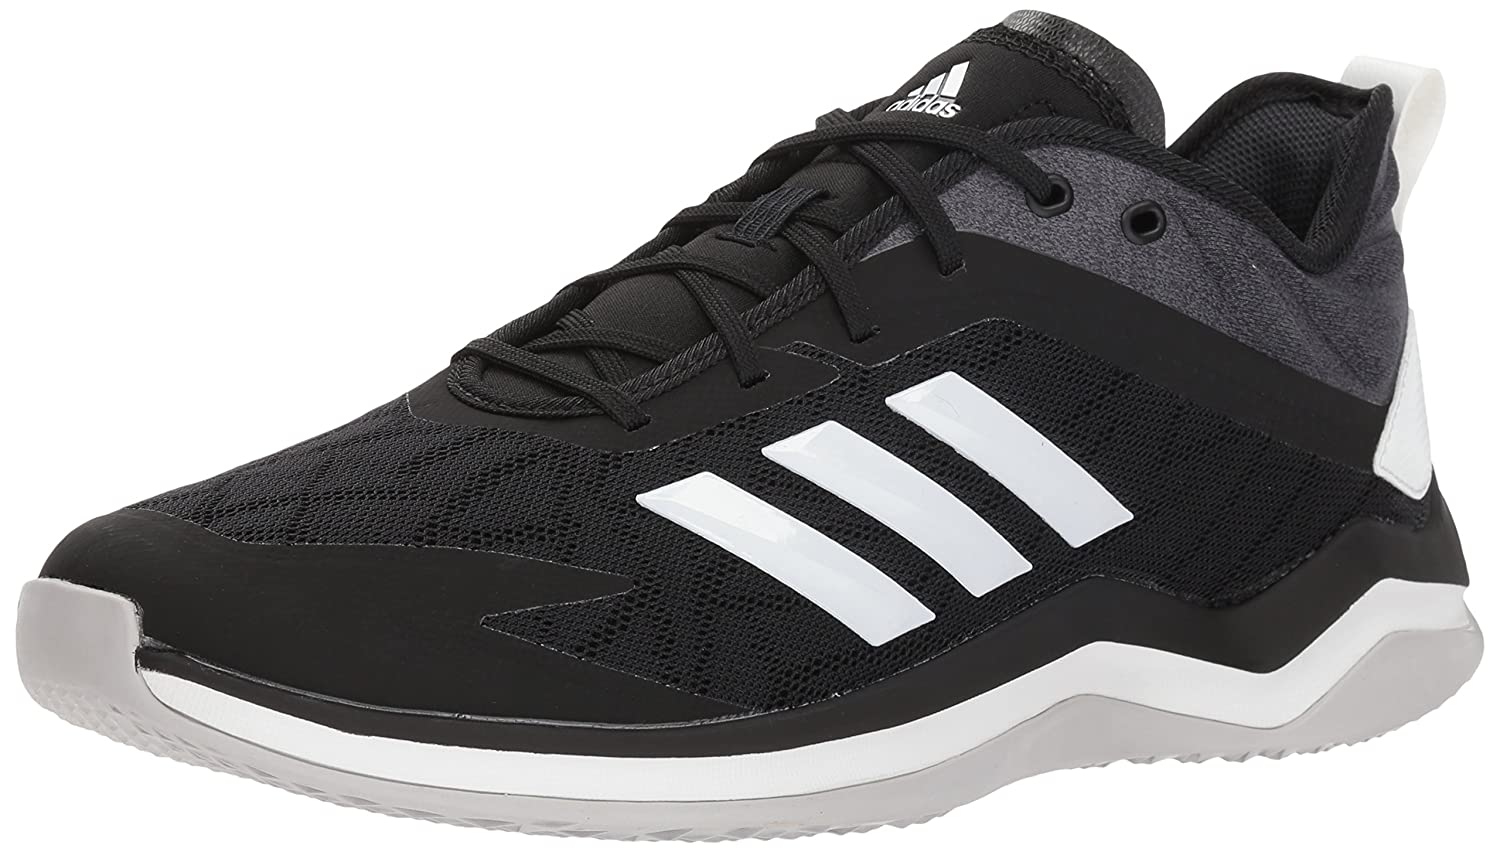 adidas Men's Speed Trainer 4 Baseball Shoe B077X3S6LM 4.5 D(M) US|Black/Crystal White/Carbon